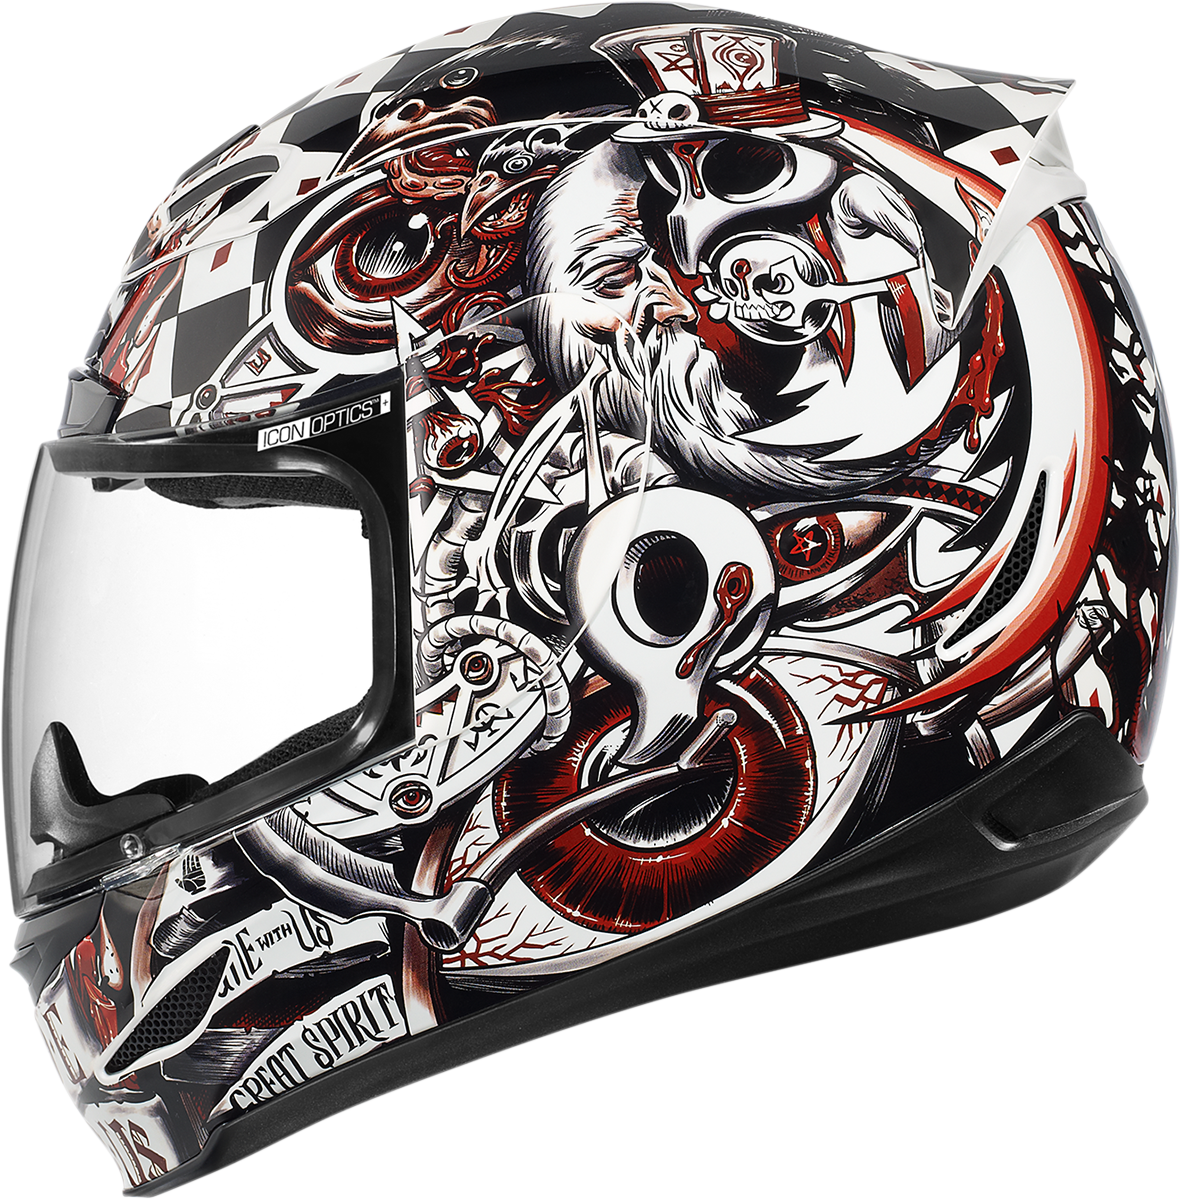 Airmada Seance Red Products Ride Icon um yes please